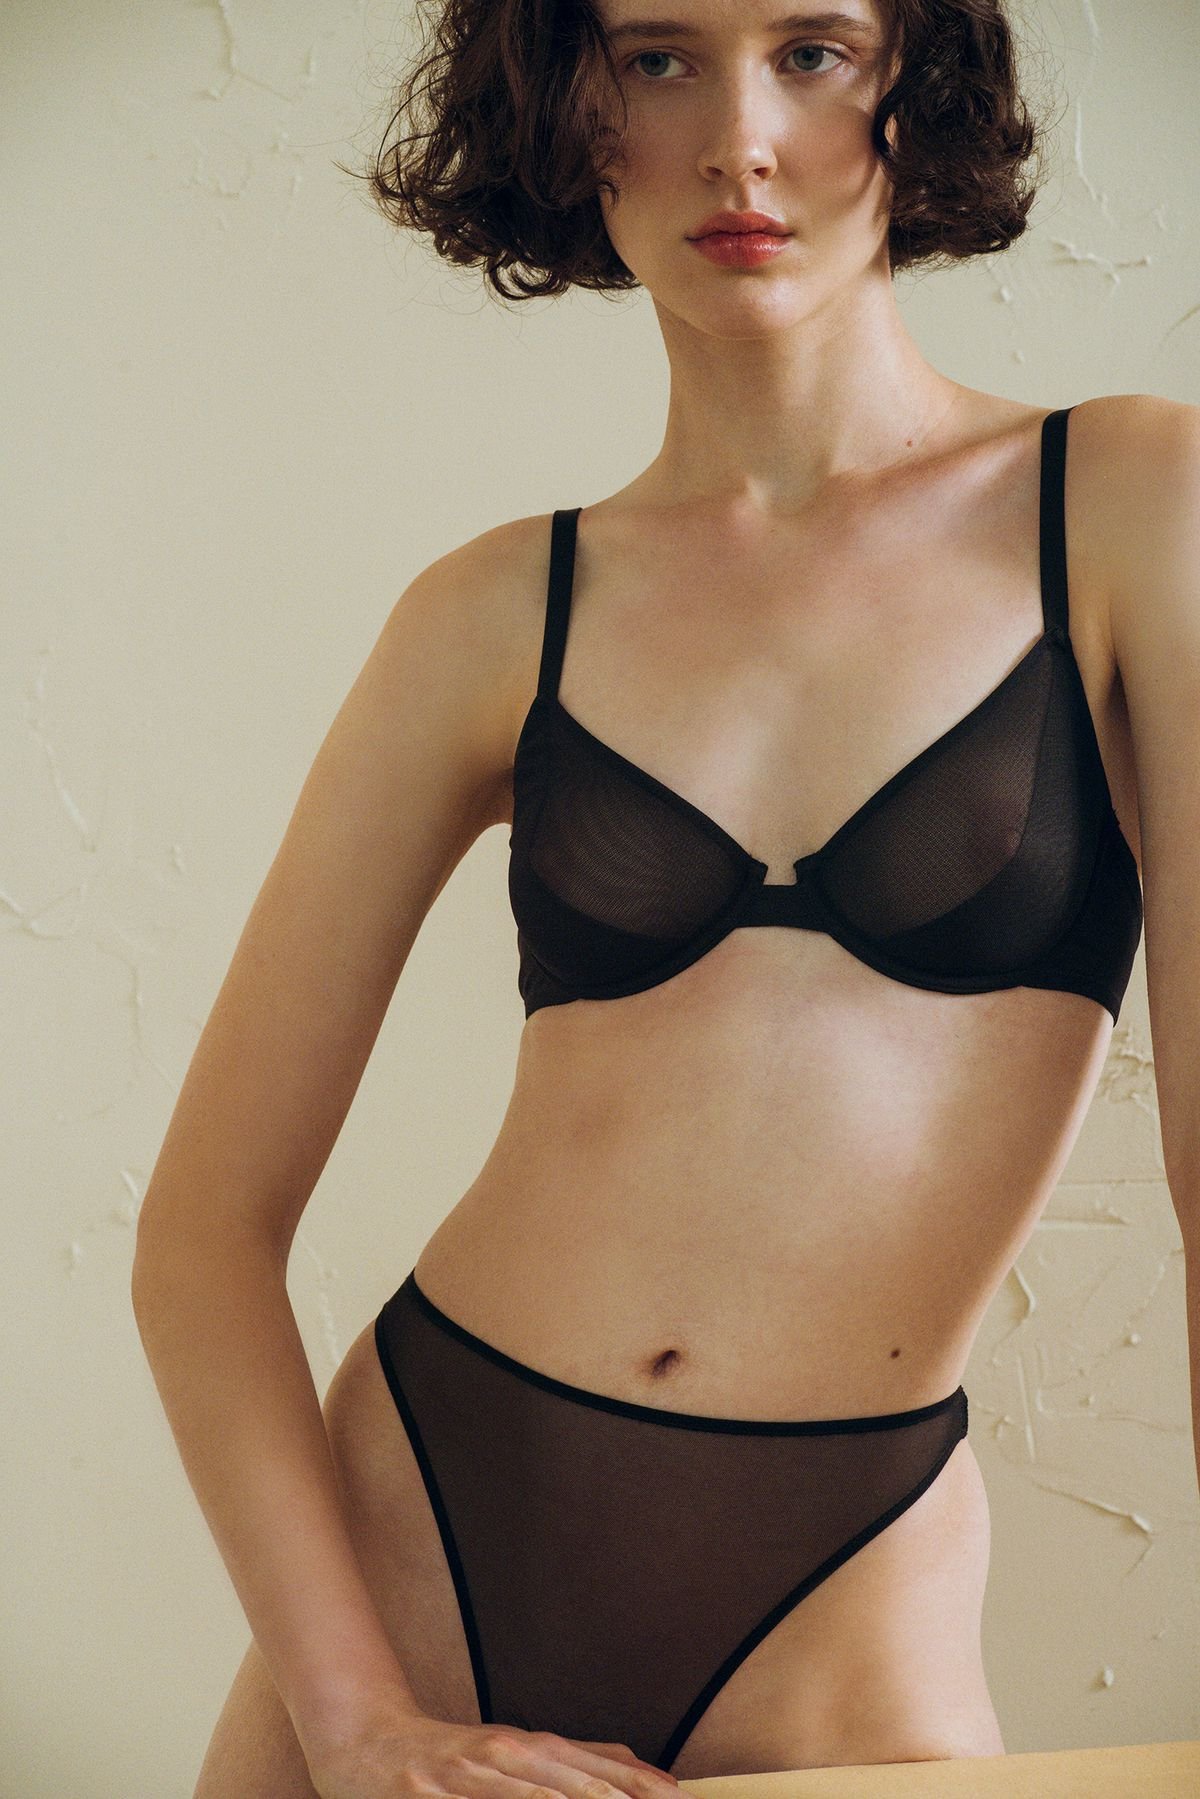 81f3f3383 A model in a sheer black lingerie set from The Great Eros